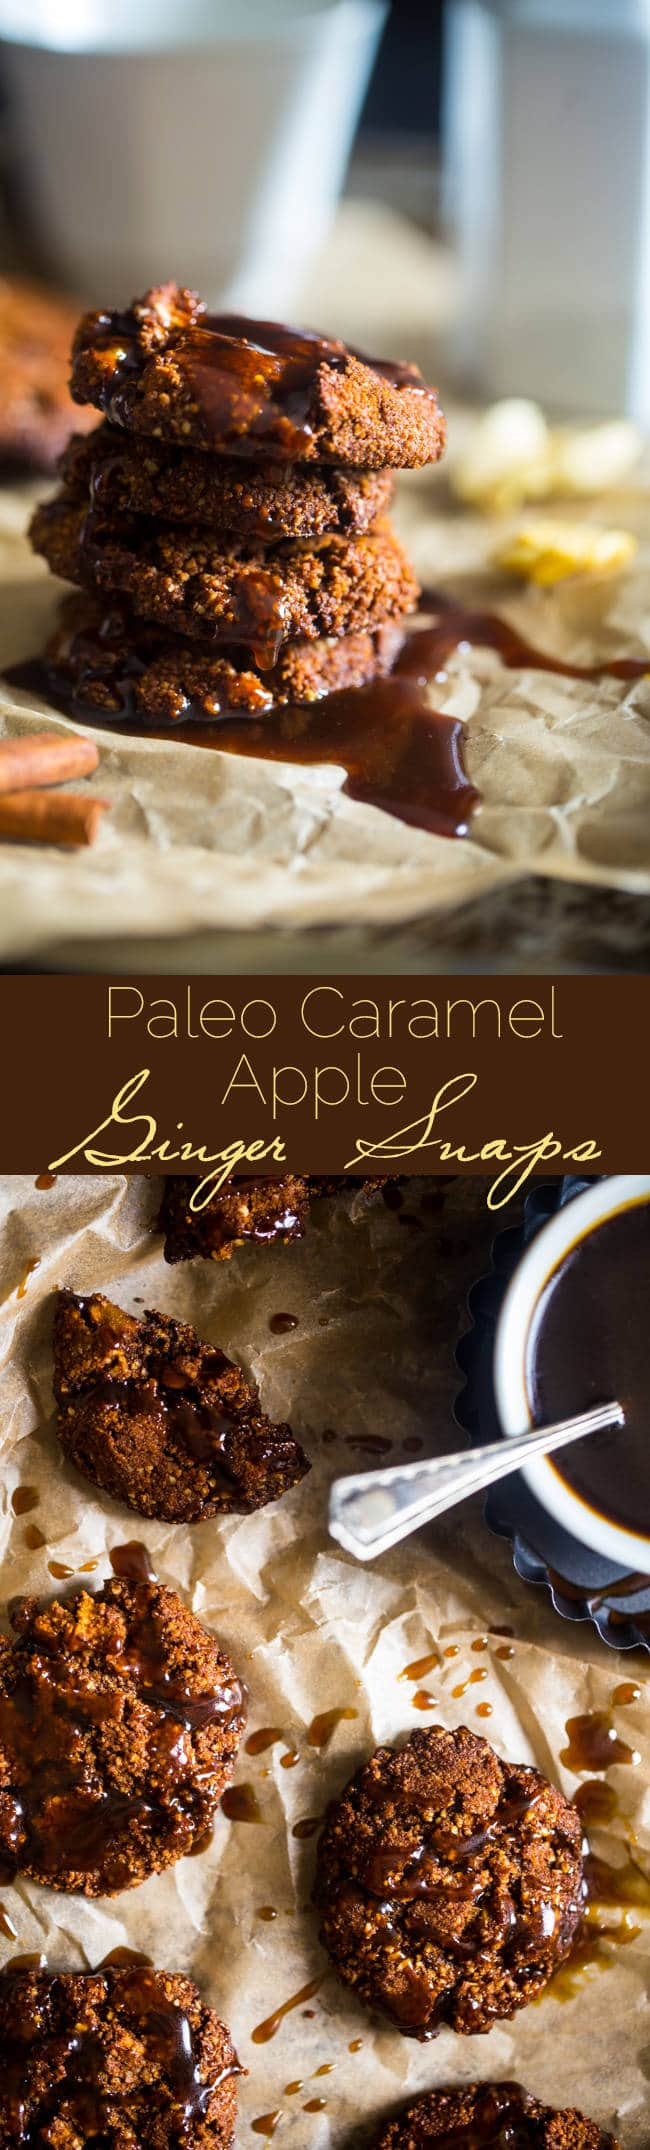 Paleo Caramel Apple Ginger Snaps - This healthy ginger snap recipe is mixed with dried apples and drizzled with caramel sauce for a paleo-friendly twist on the classic fall or Christmas cookie! | Foodfaithfitness.com | @FoodFaithFit